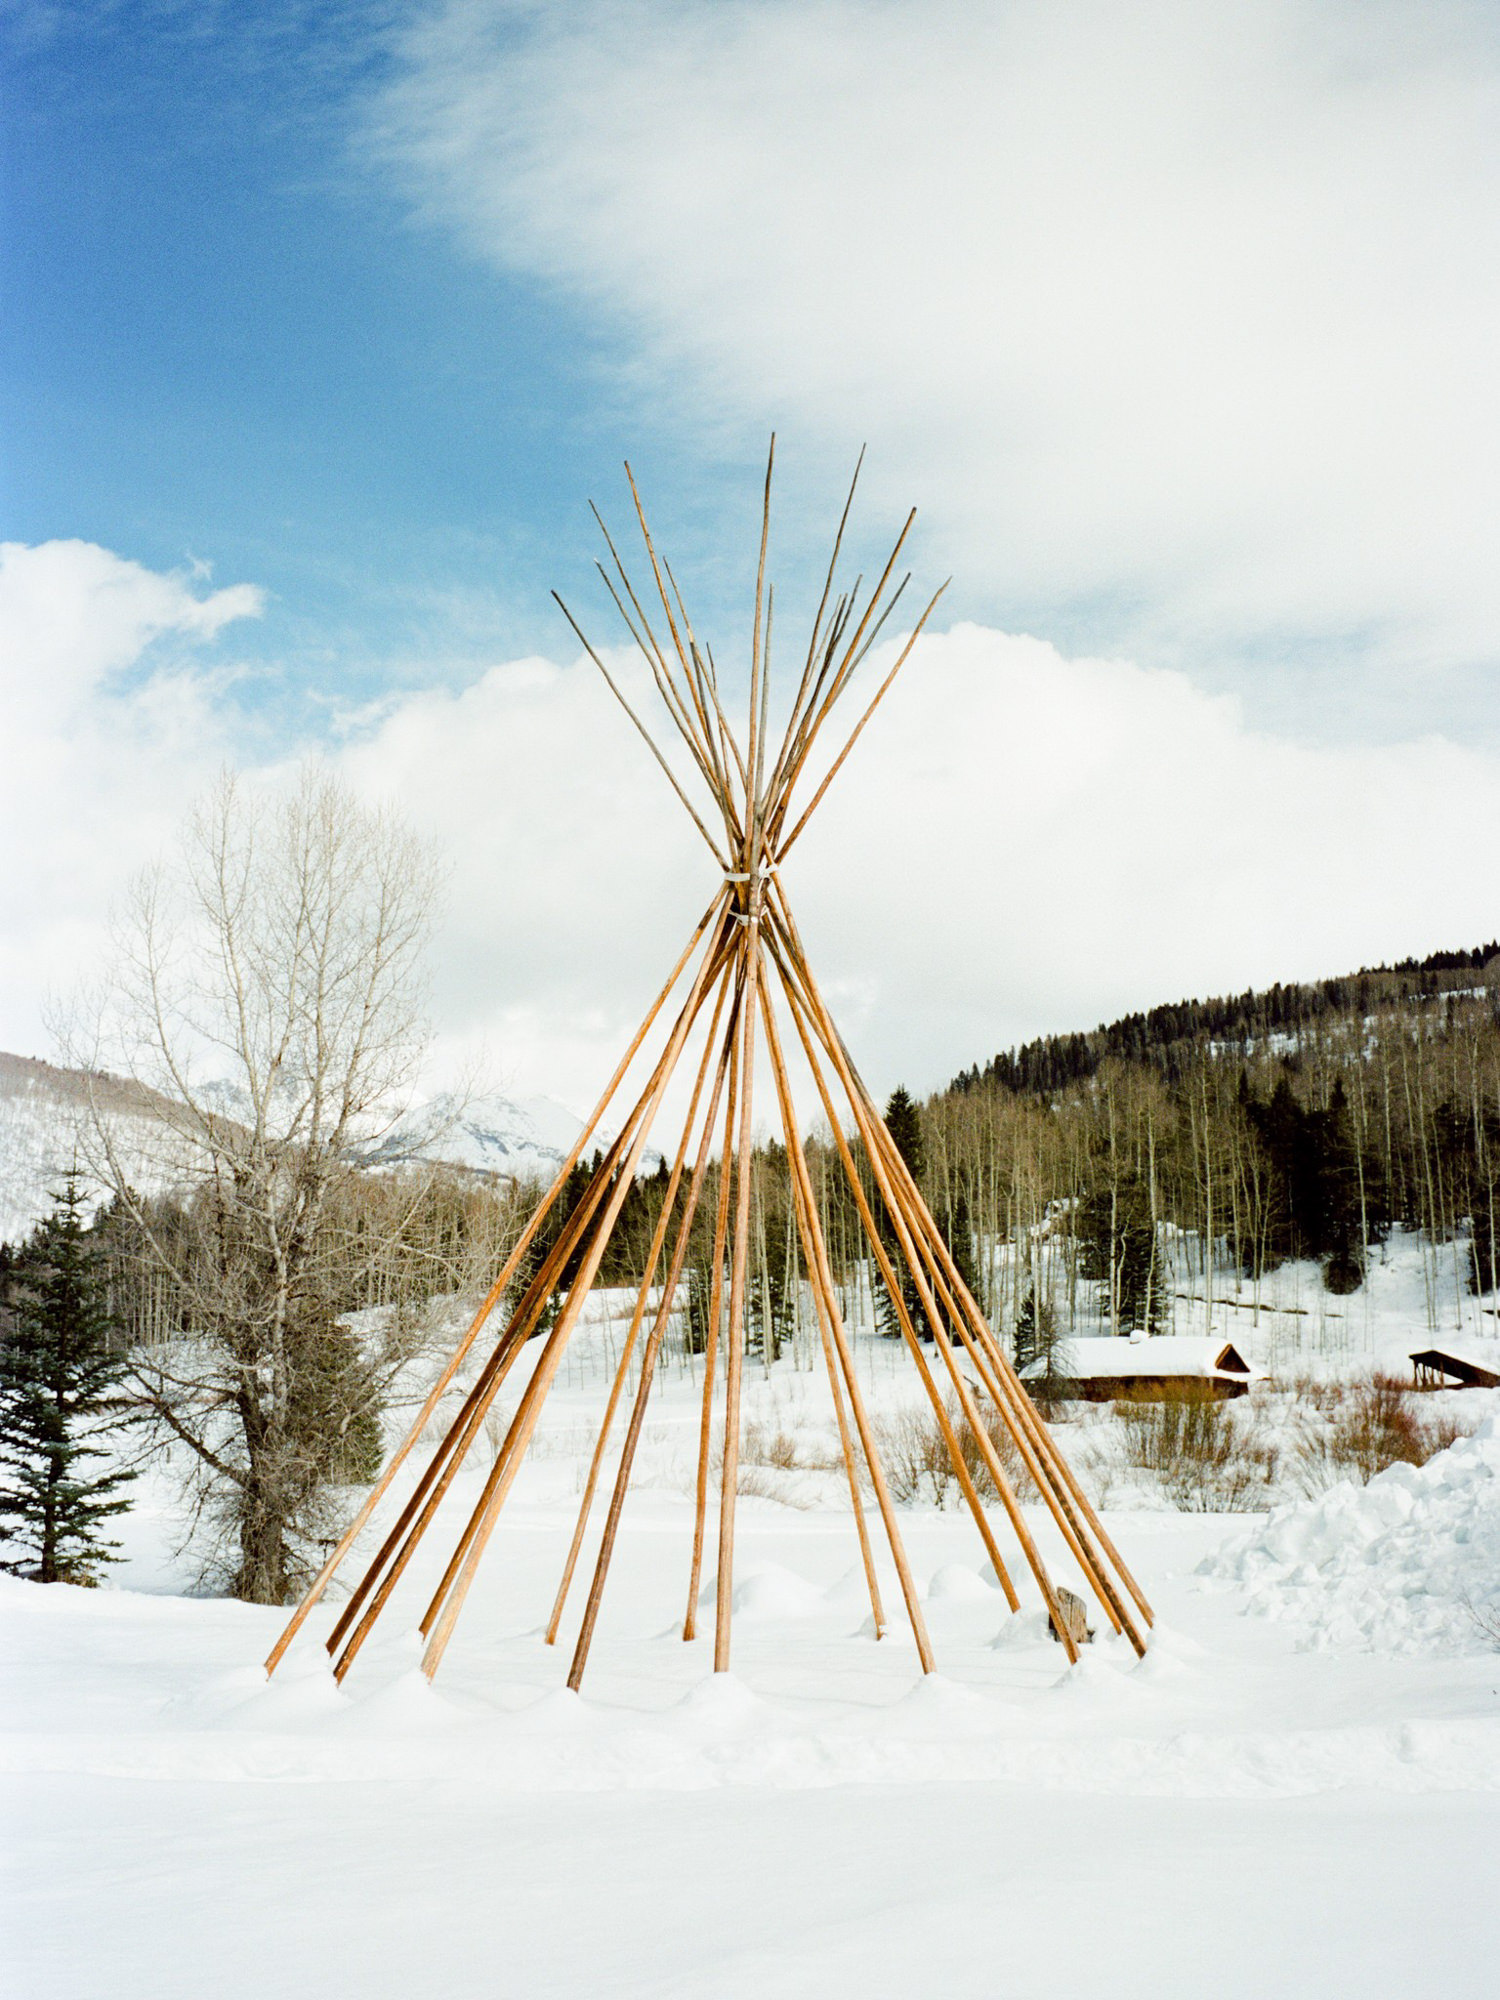 Teepee made for ceremony  -  photo by Benj Haisch